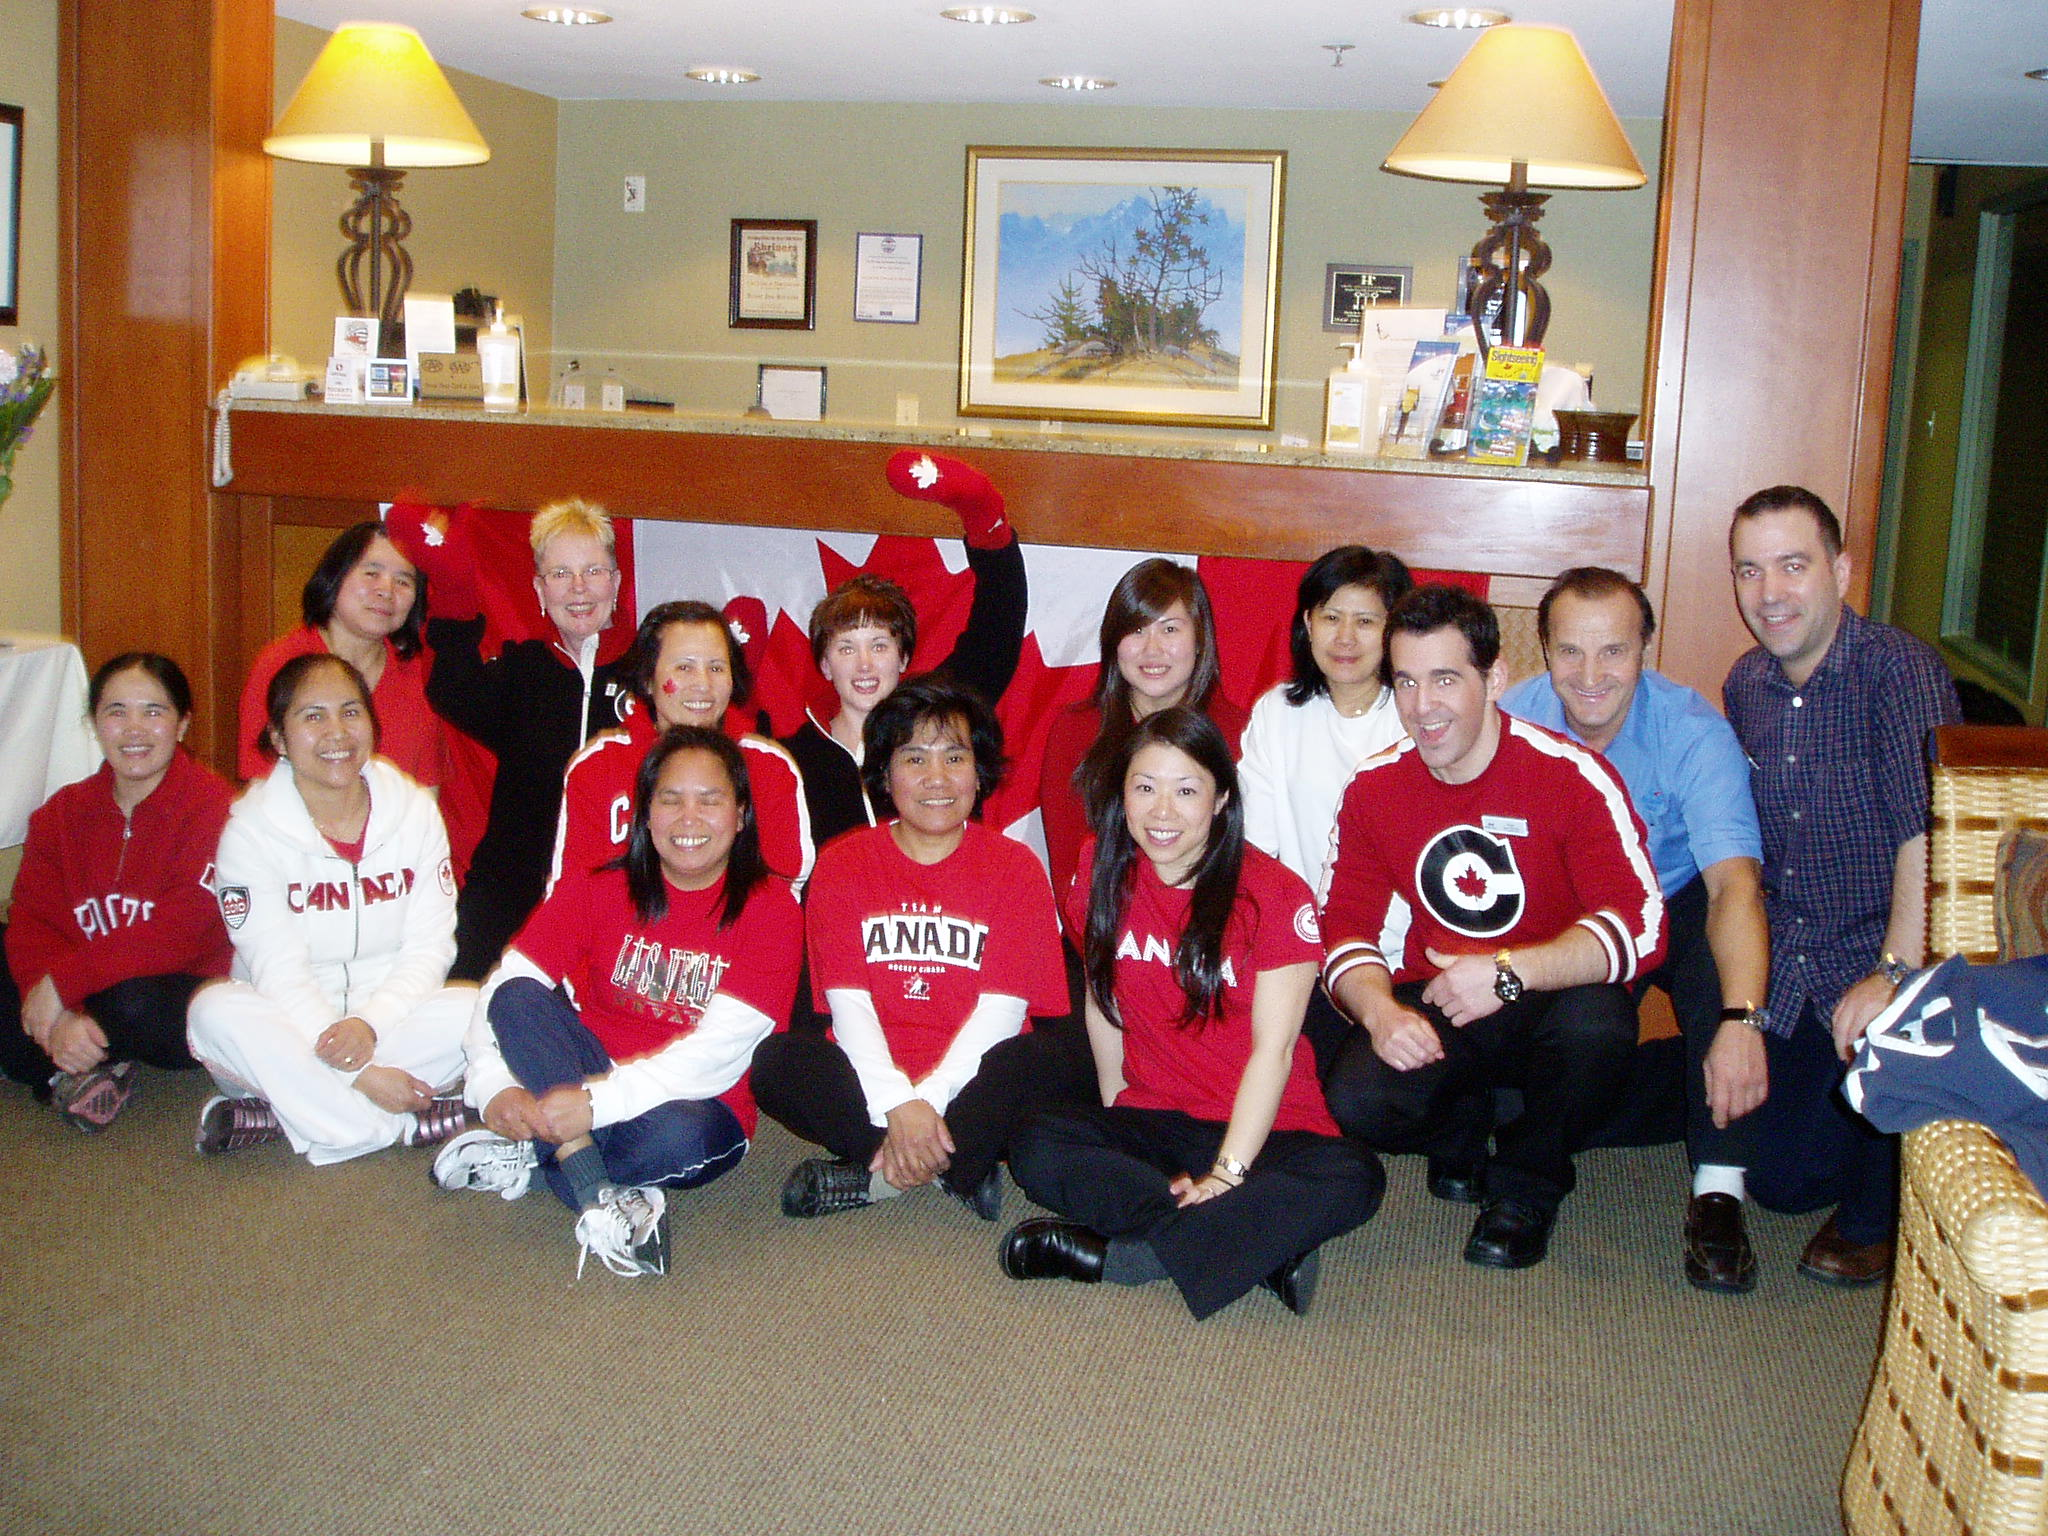 Accent Inns BC Hotel Chain, Burnaby team welcomes the Olympics